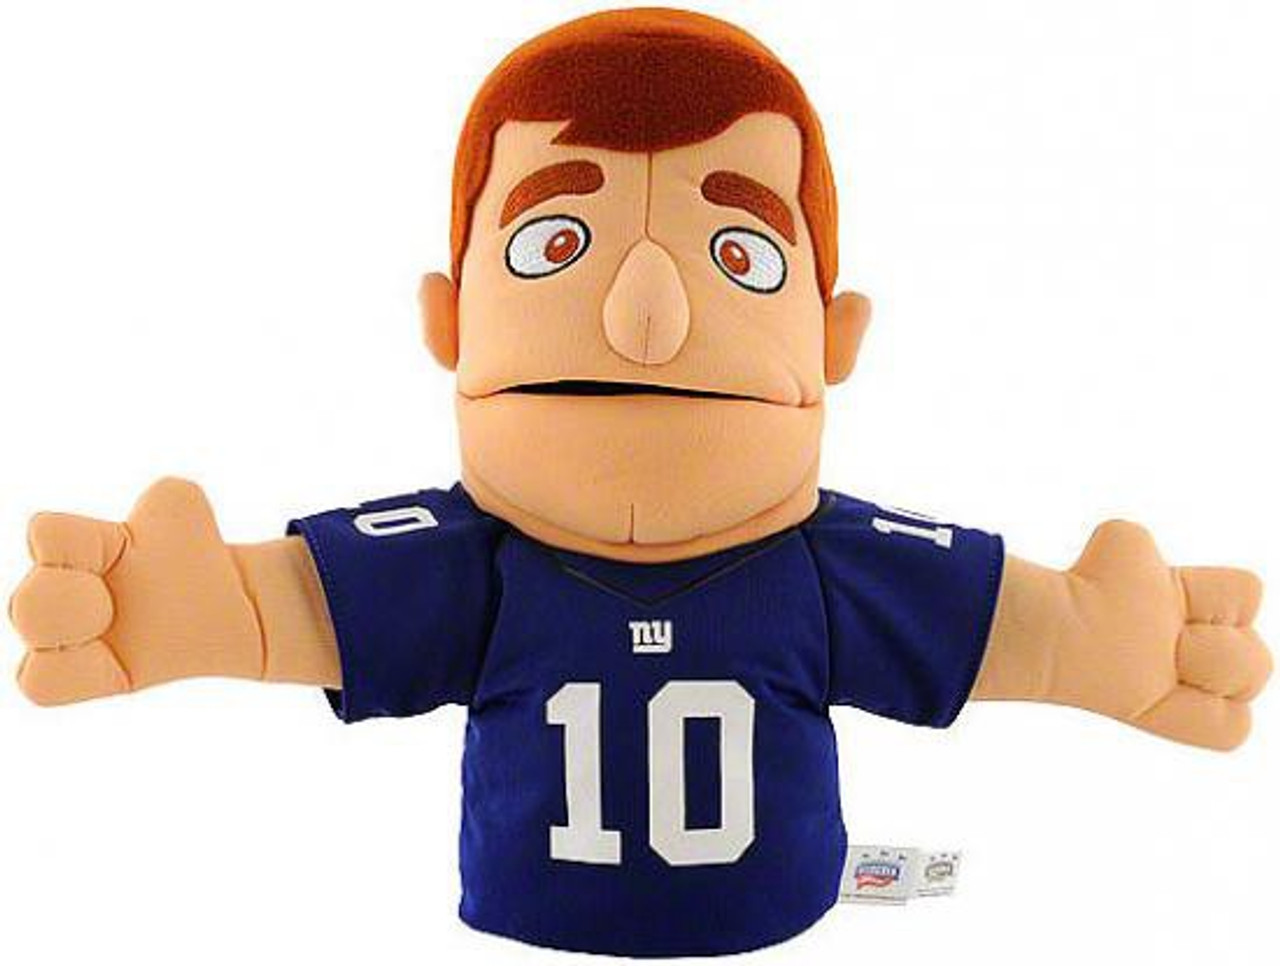 NFL New York Giants Eli Manning 10-Inch Plush Puppet